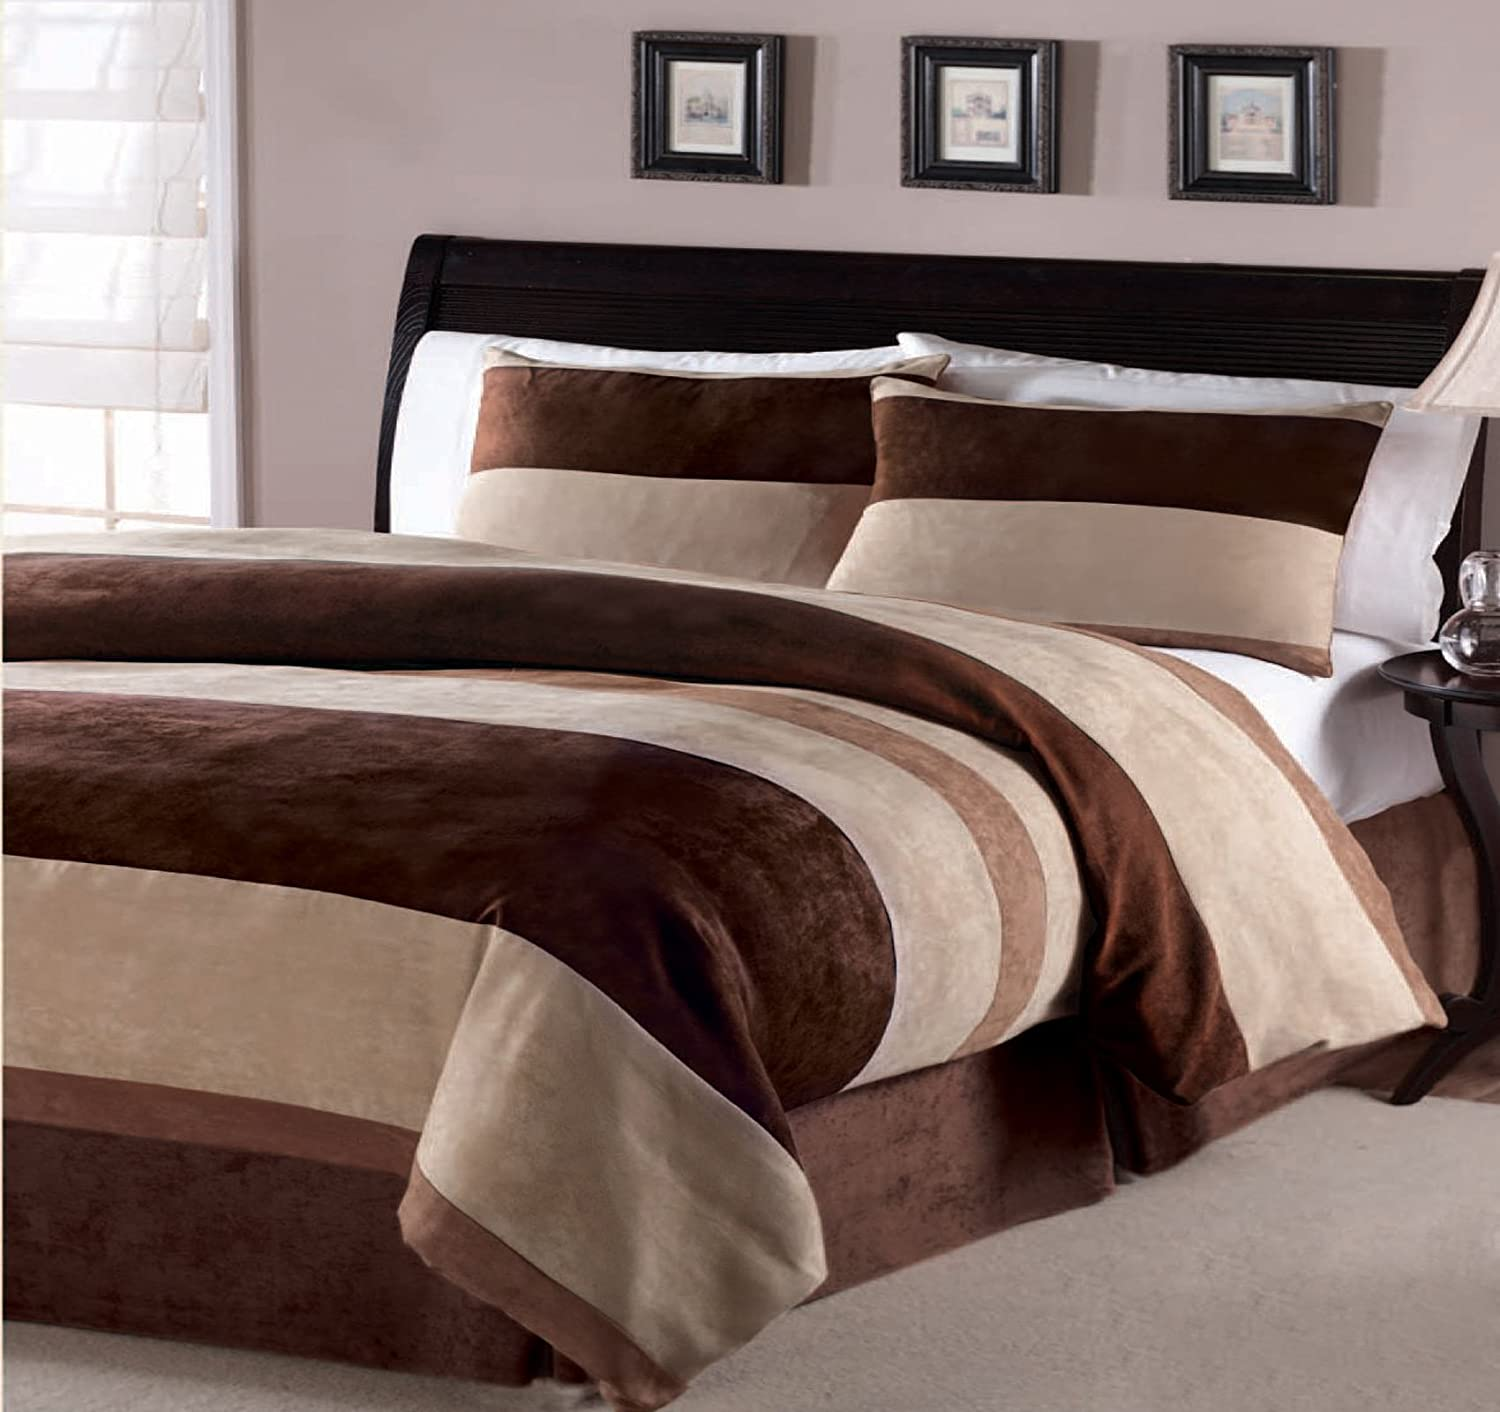 Brown bedding sets queen - Comforter Set Bedding Set Bed In A Bag Queen Size Beige Brown Chocolate Brown 4 Piece